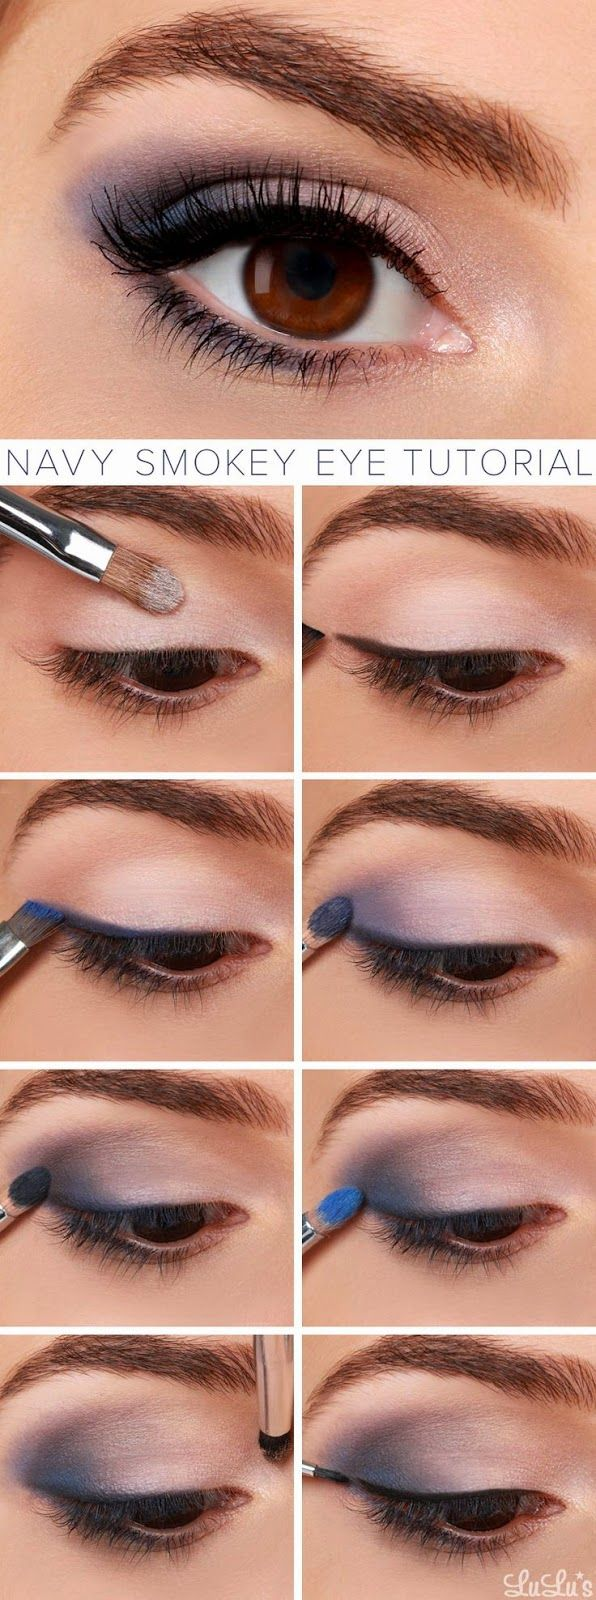 Navy Smokey eye tutorial